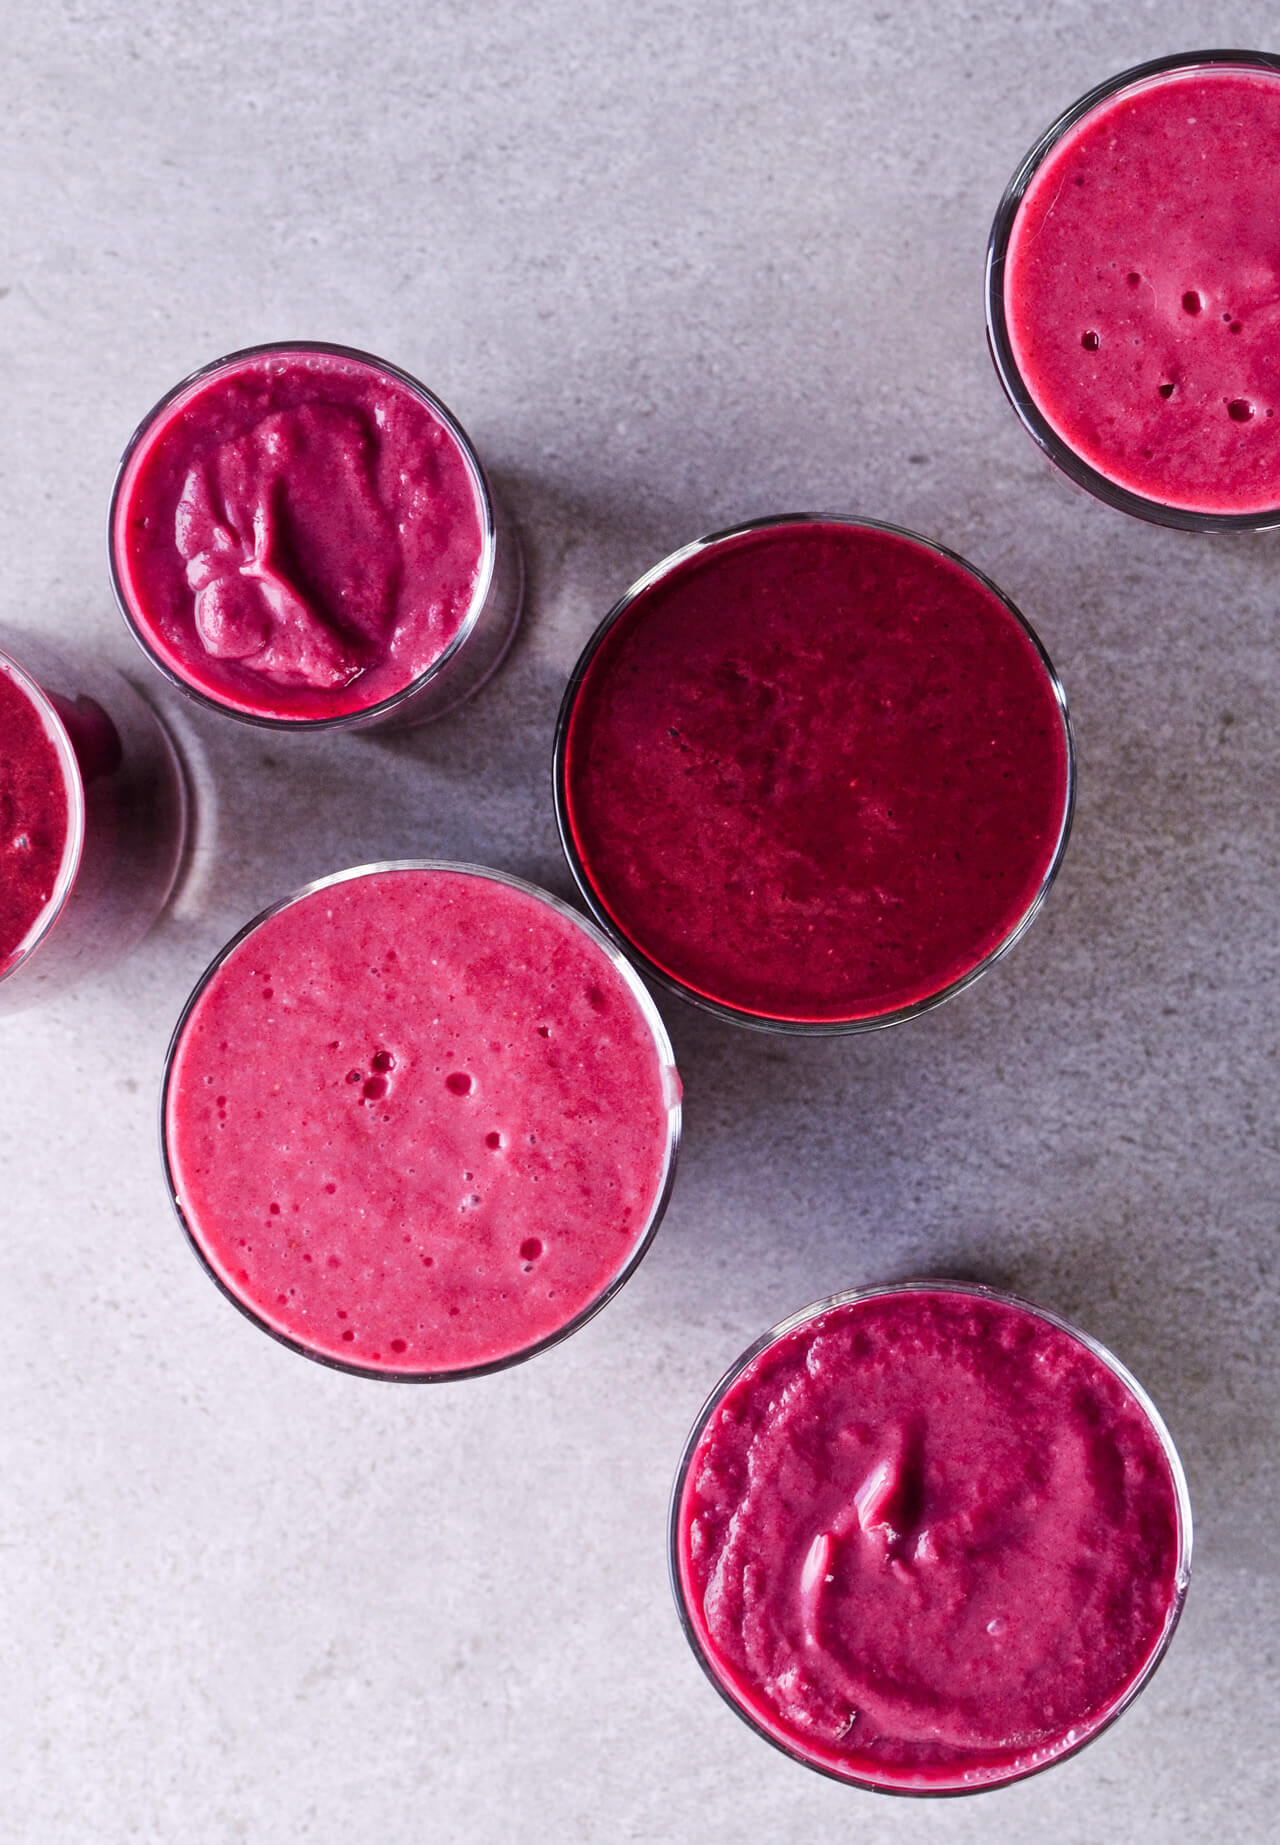 Avocado citrus berry beet smoothie - 3 recipes - aren't just pretty but are really healthy too! Purify and detox your body and start the day the vibrant way. Great breakfast or snack option. | @mitzyathome sugarsalted.com